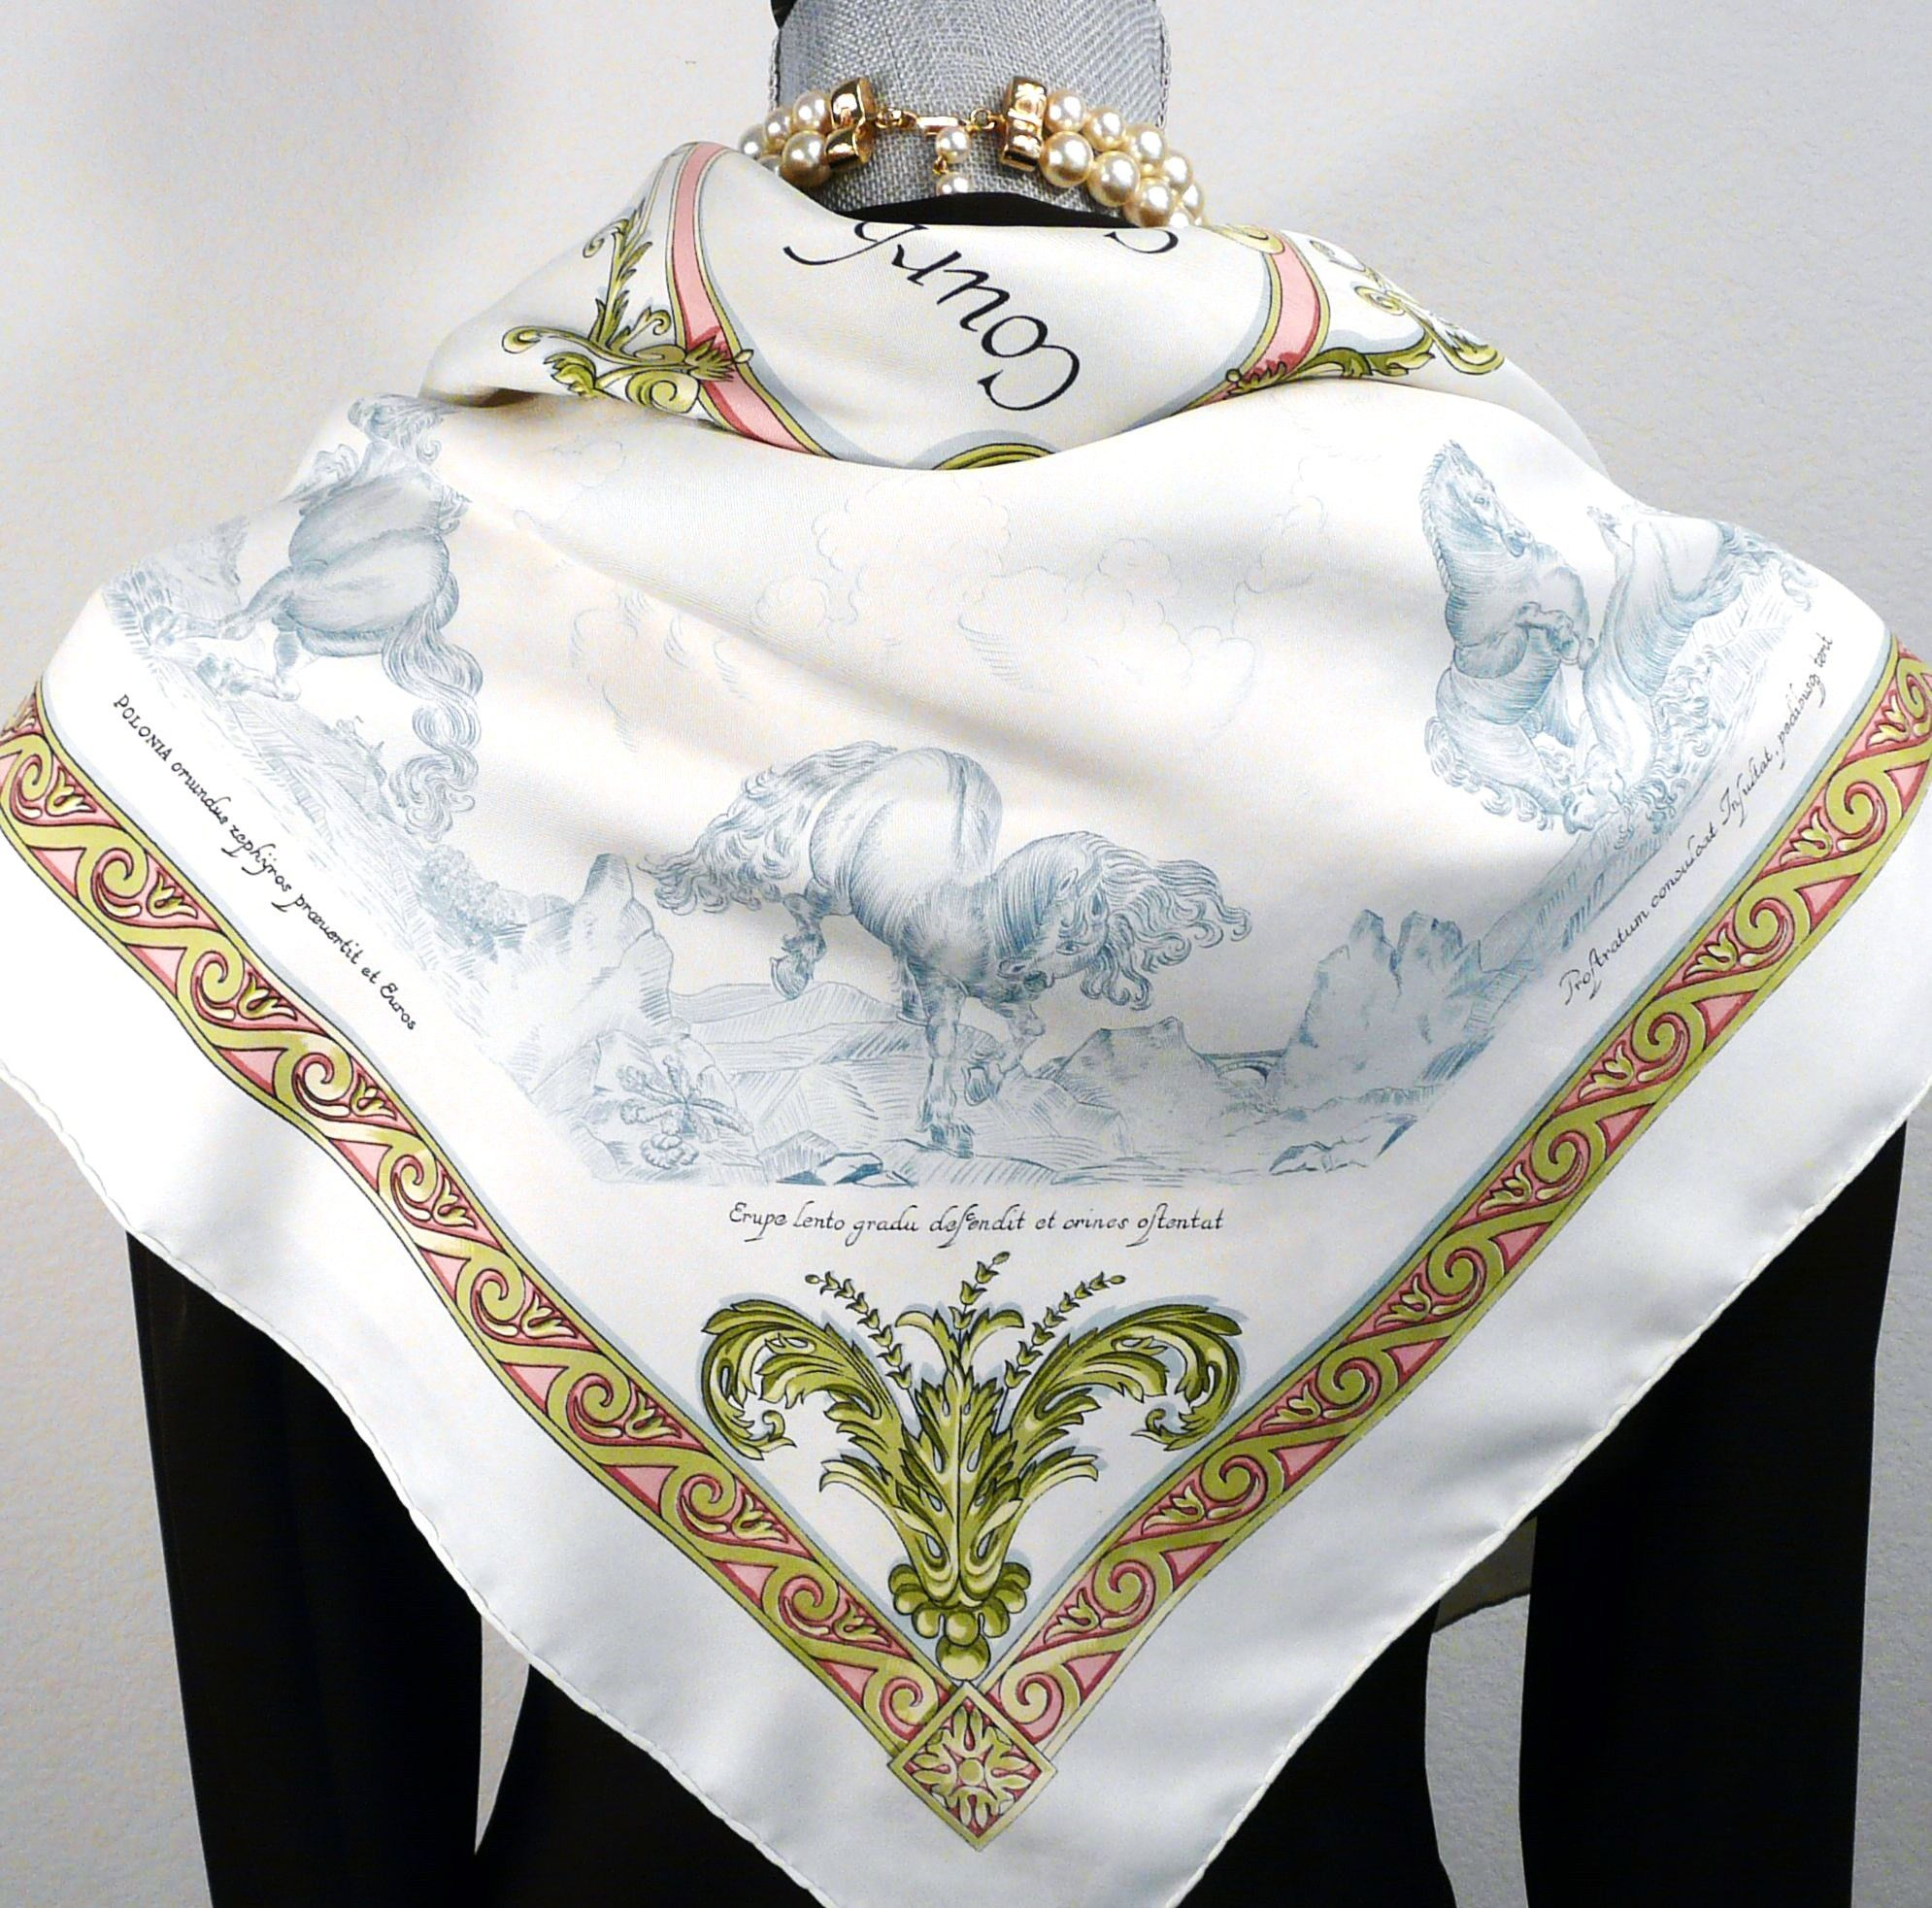 Authentic Vintage Hermes Silk Scarf Courbettes e Cabrioles (1654) Firs – Carre de Paris